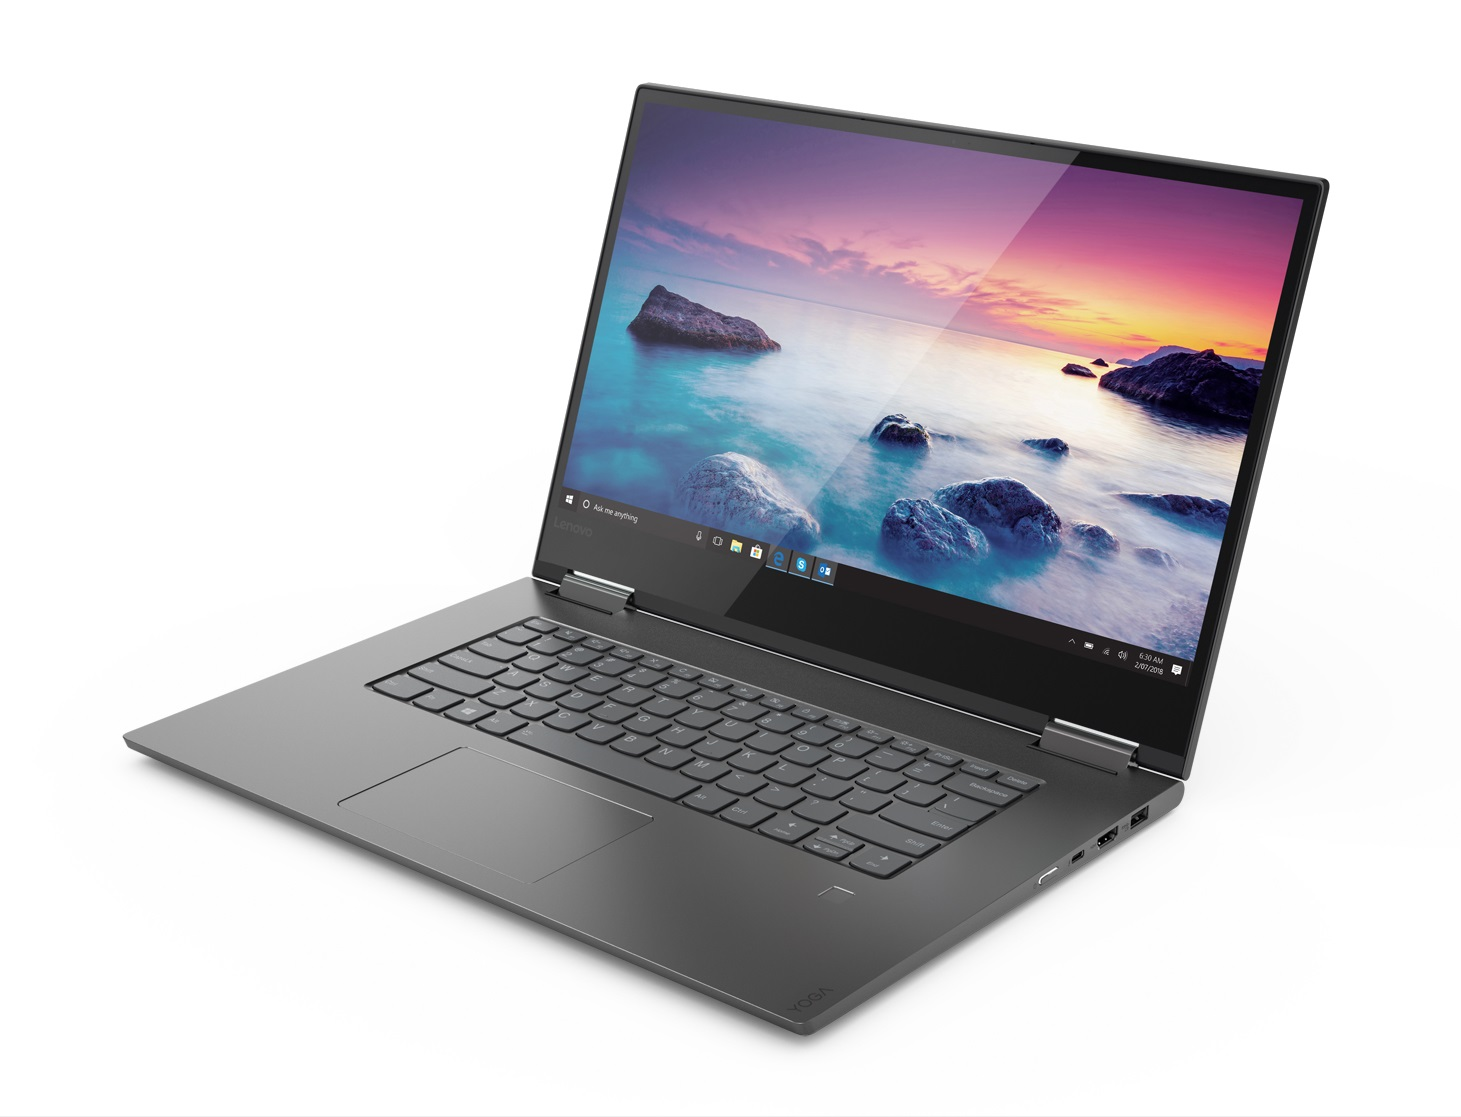 Фото  Ультрабук Lenovo Yoga 730 Iron Grey (81CU0053RA)